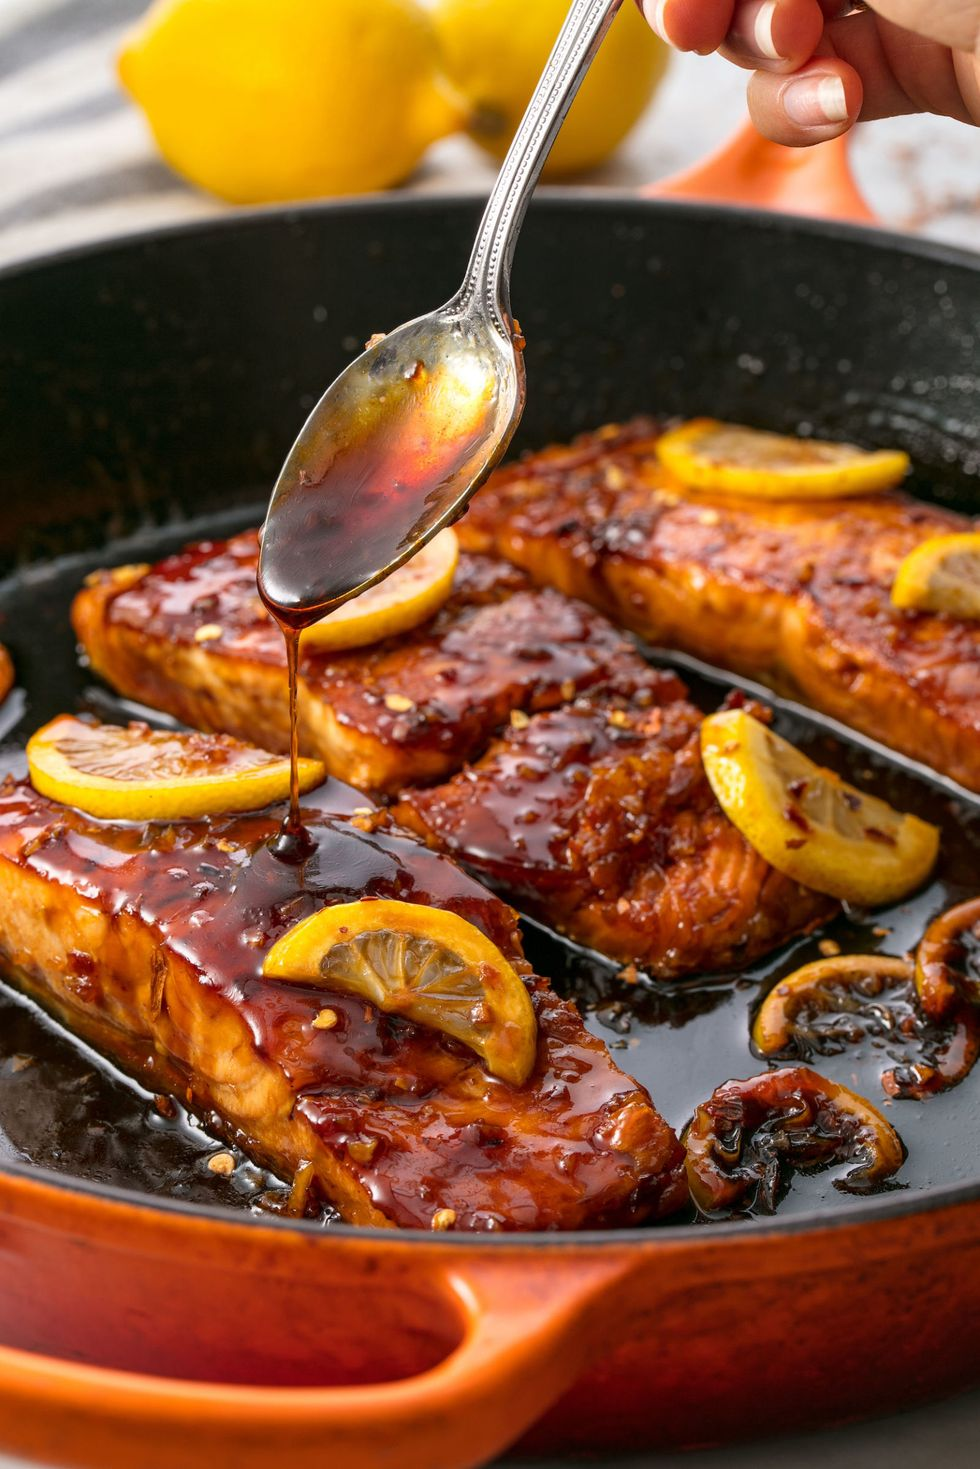 25 Easy Healthy Dinner Recipes -  Honey Garlic Glazed Salmon